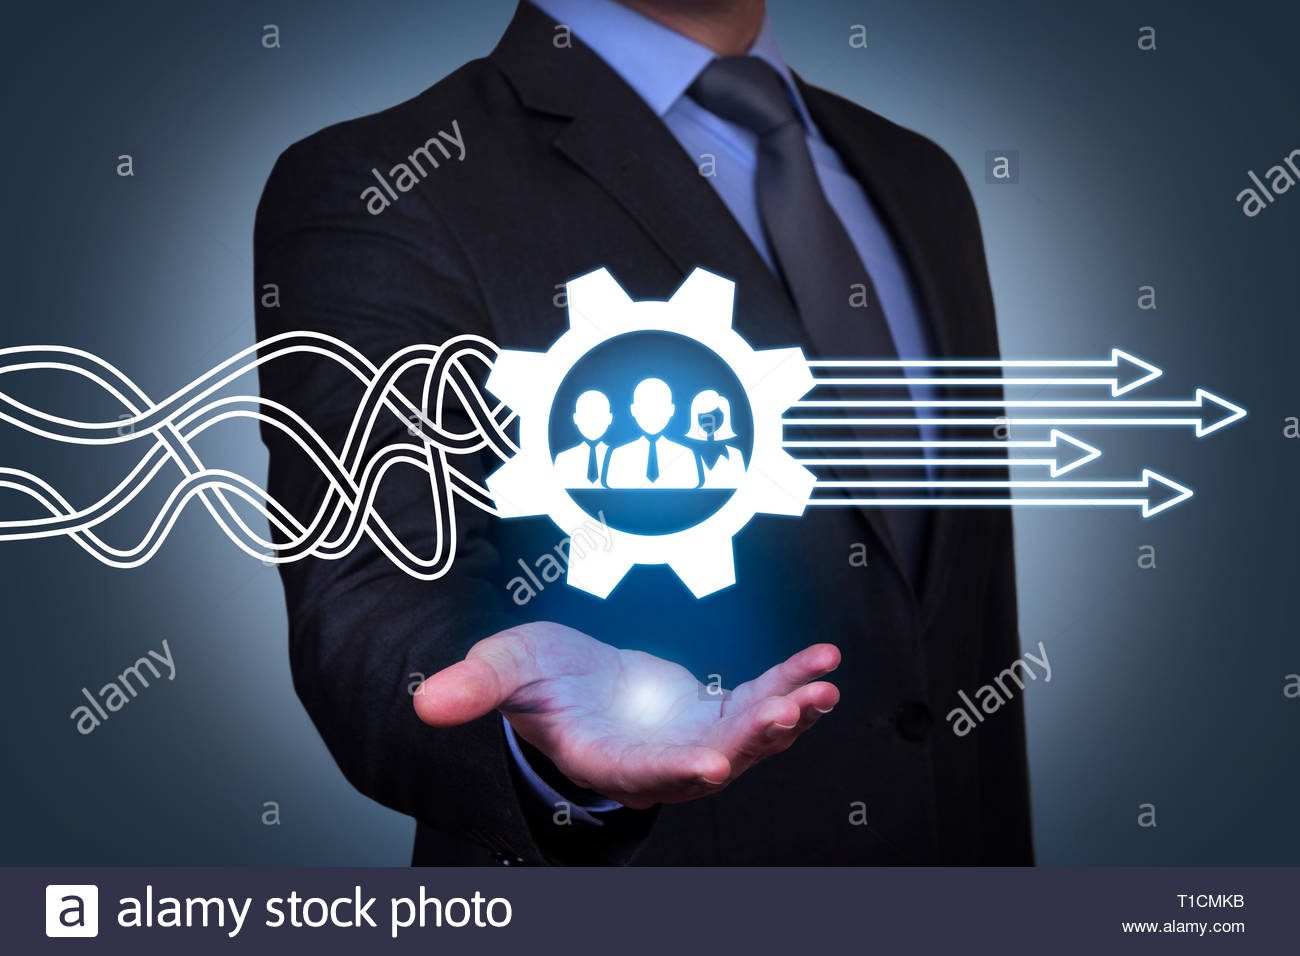 Teamwork Solutions Concepts on Visual Screen Stock Photo